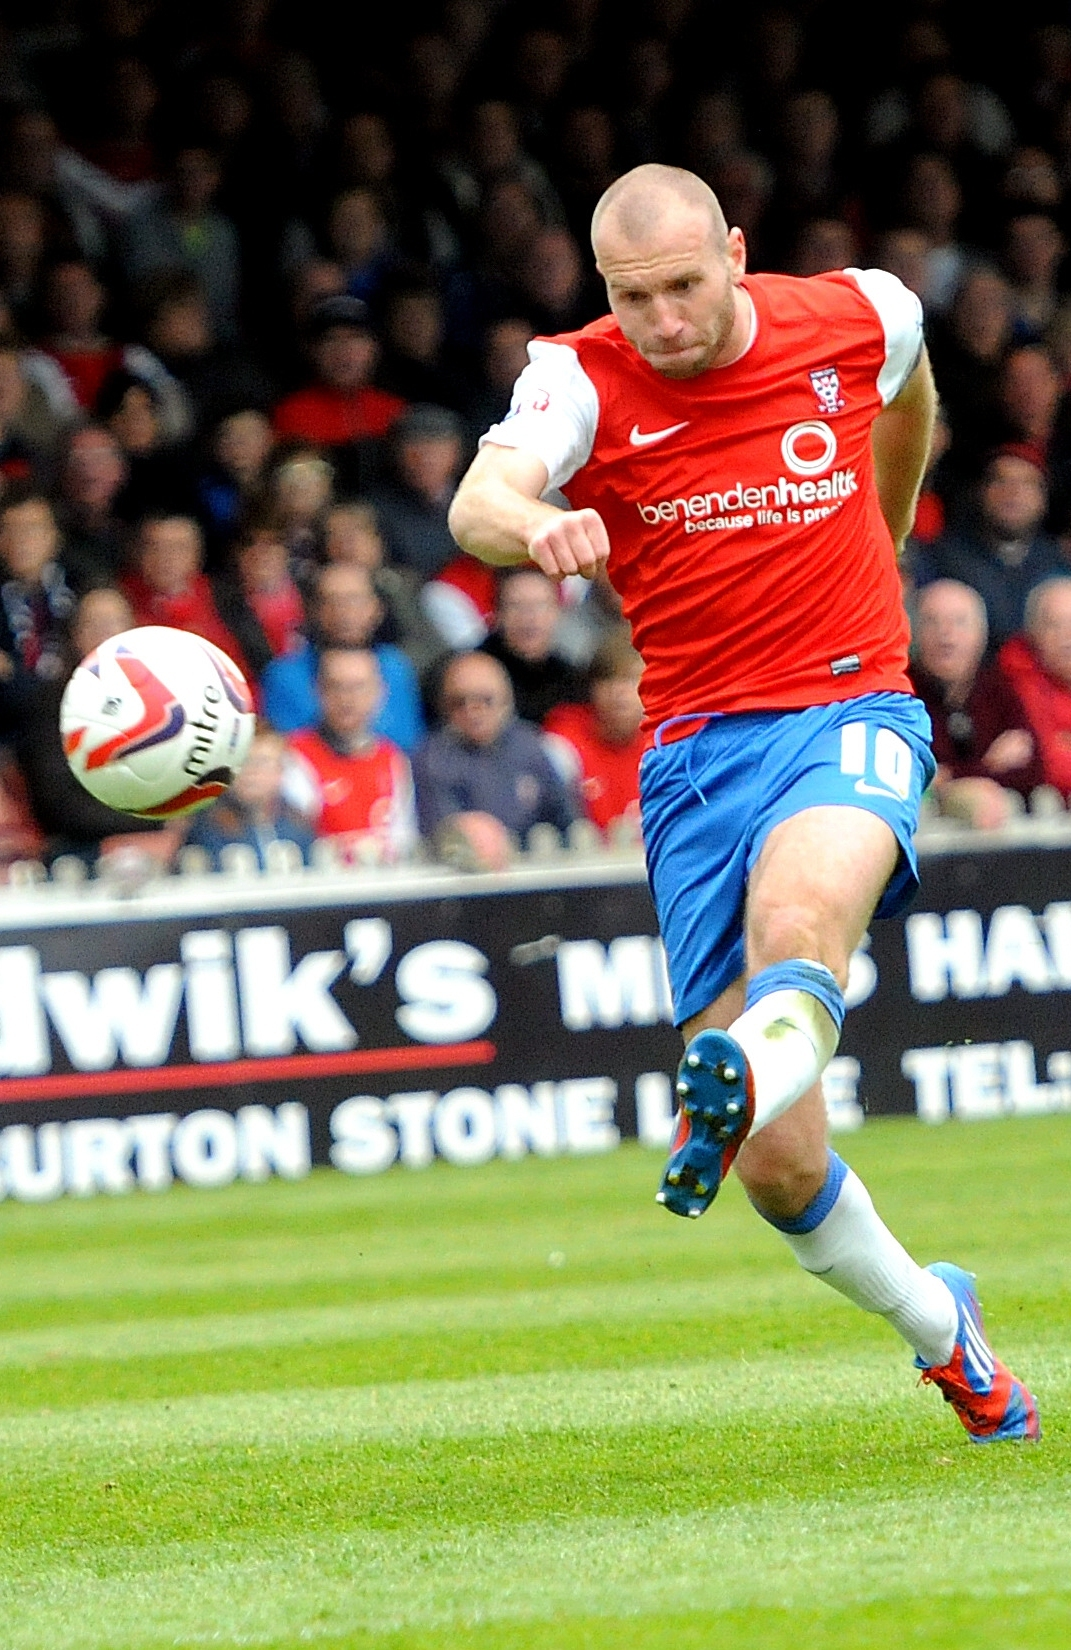 York City's Russell Penn shoots during the match at Bootham Cresent.